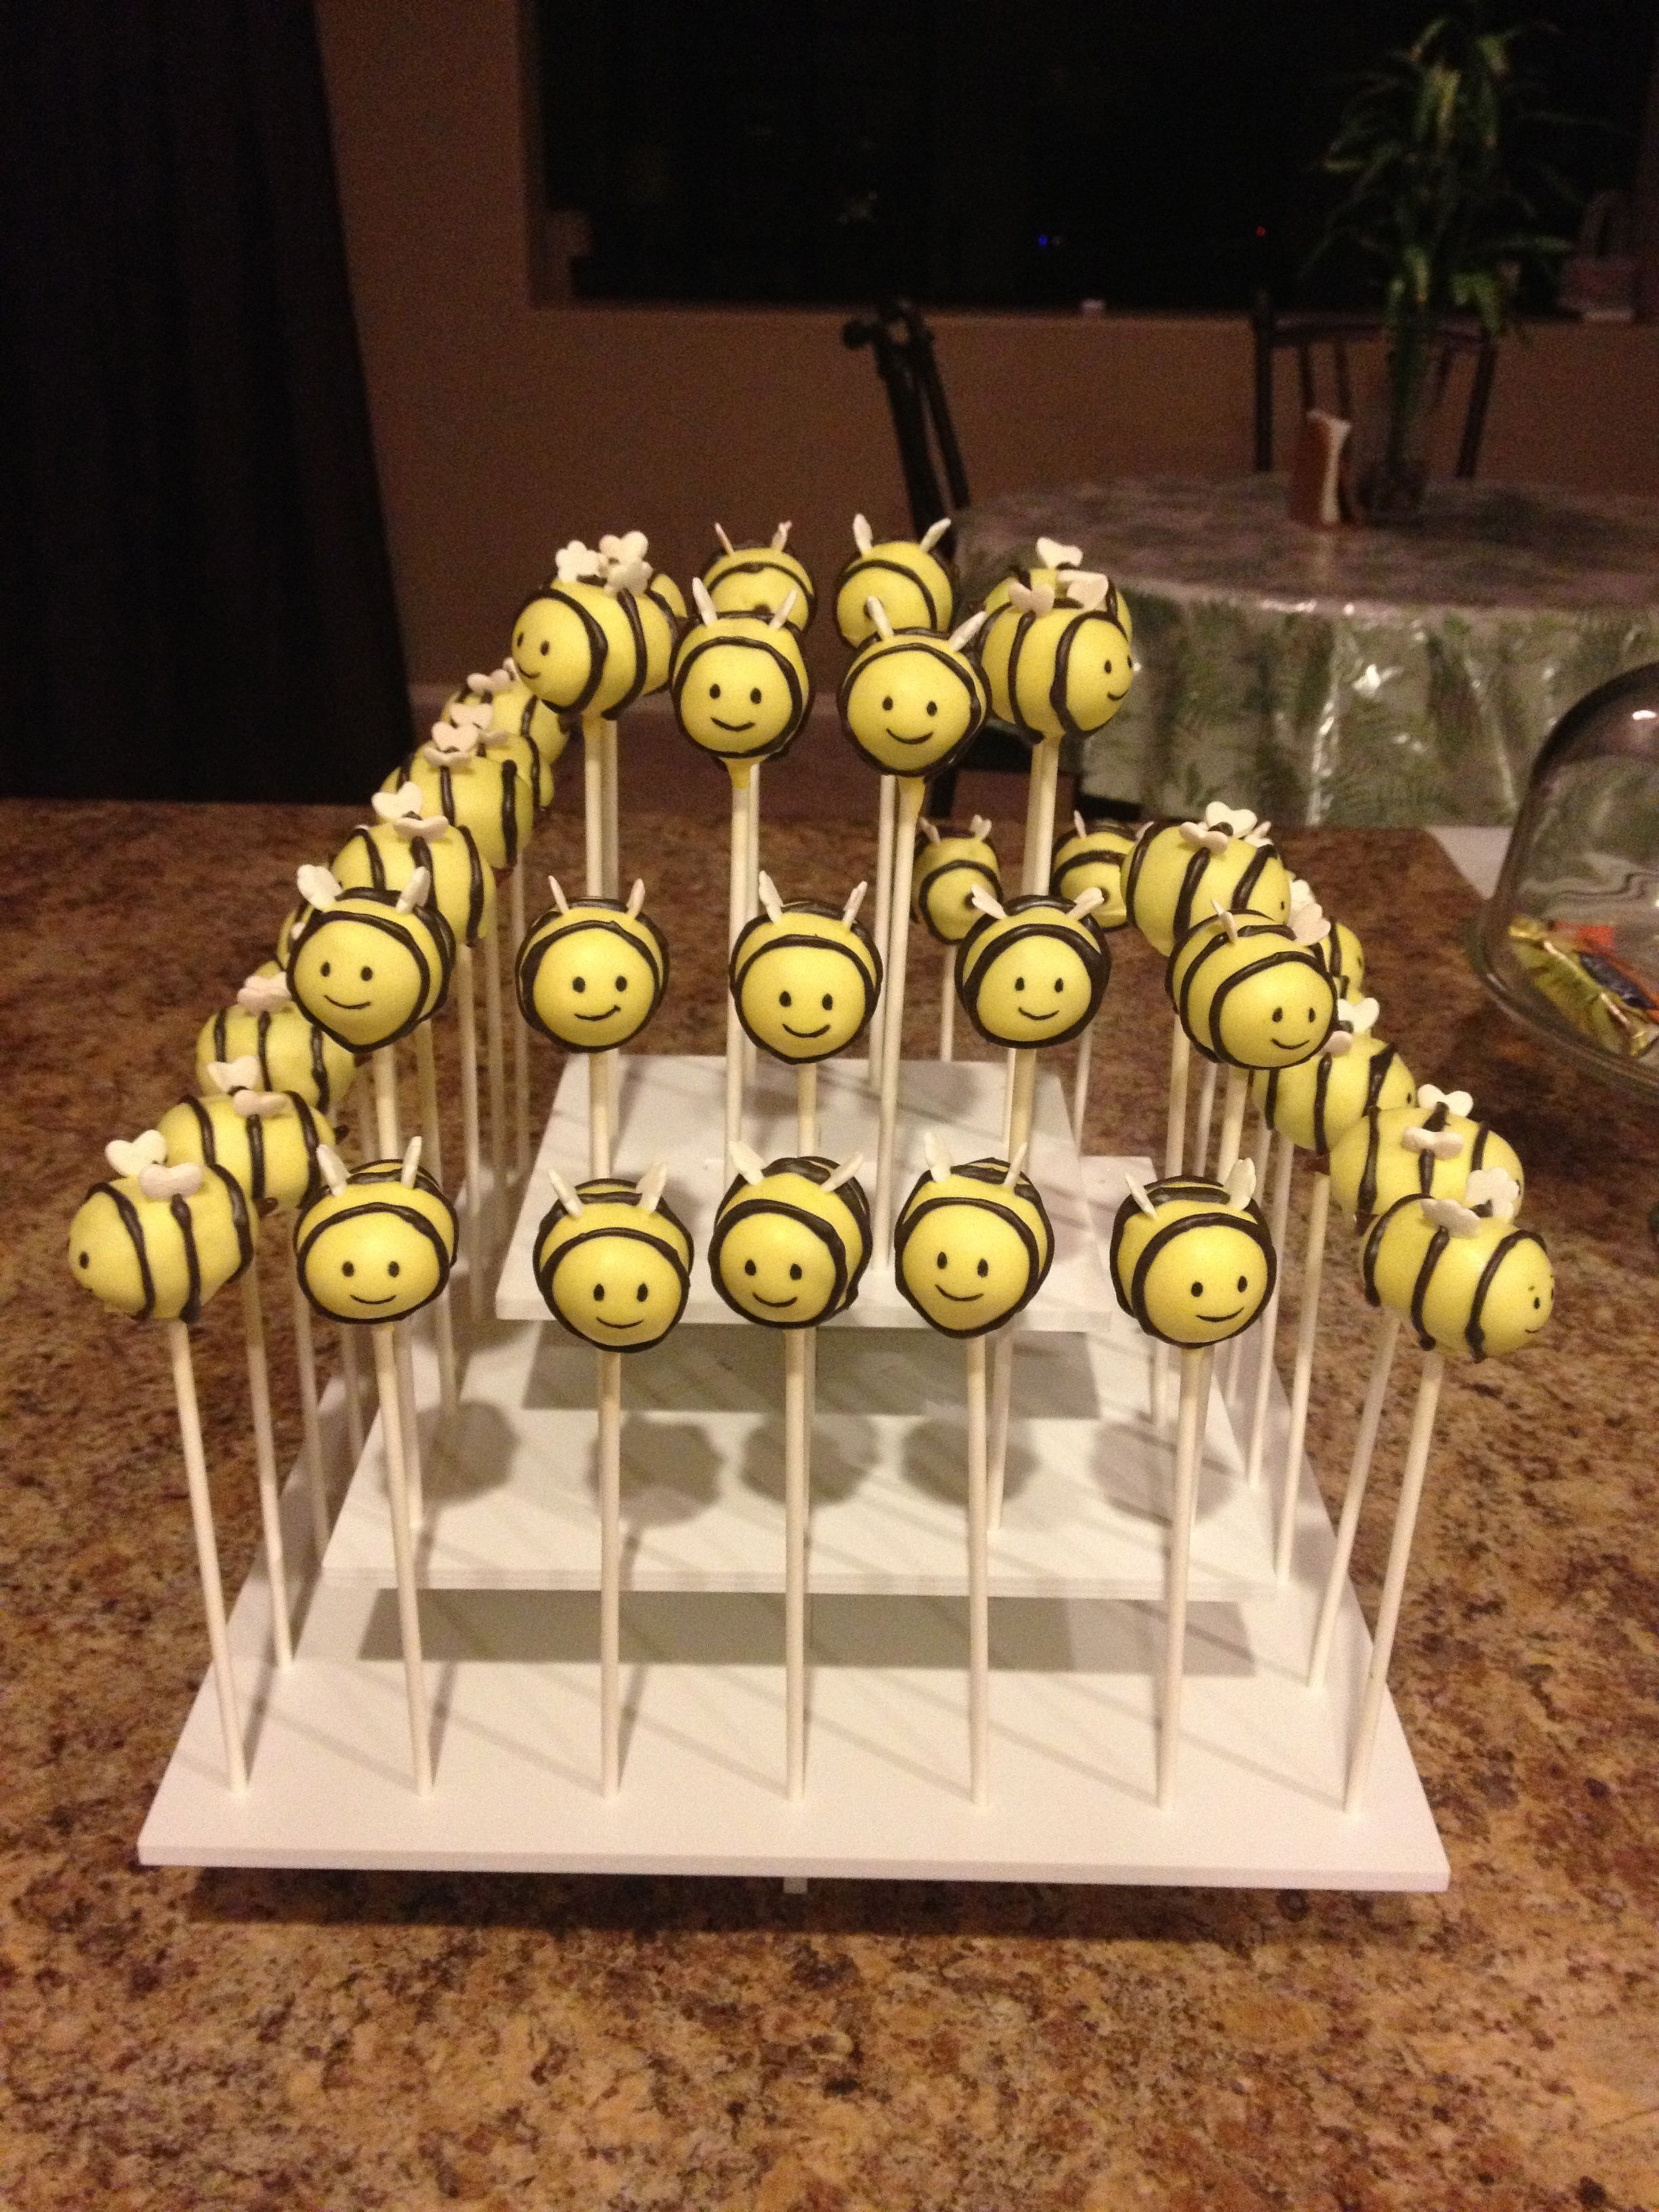 Bumble bees from yellow cake pops with images cake